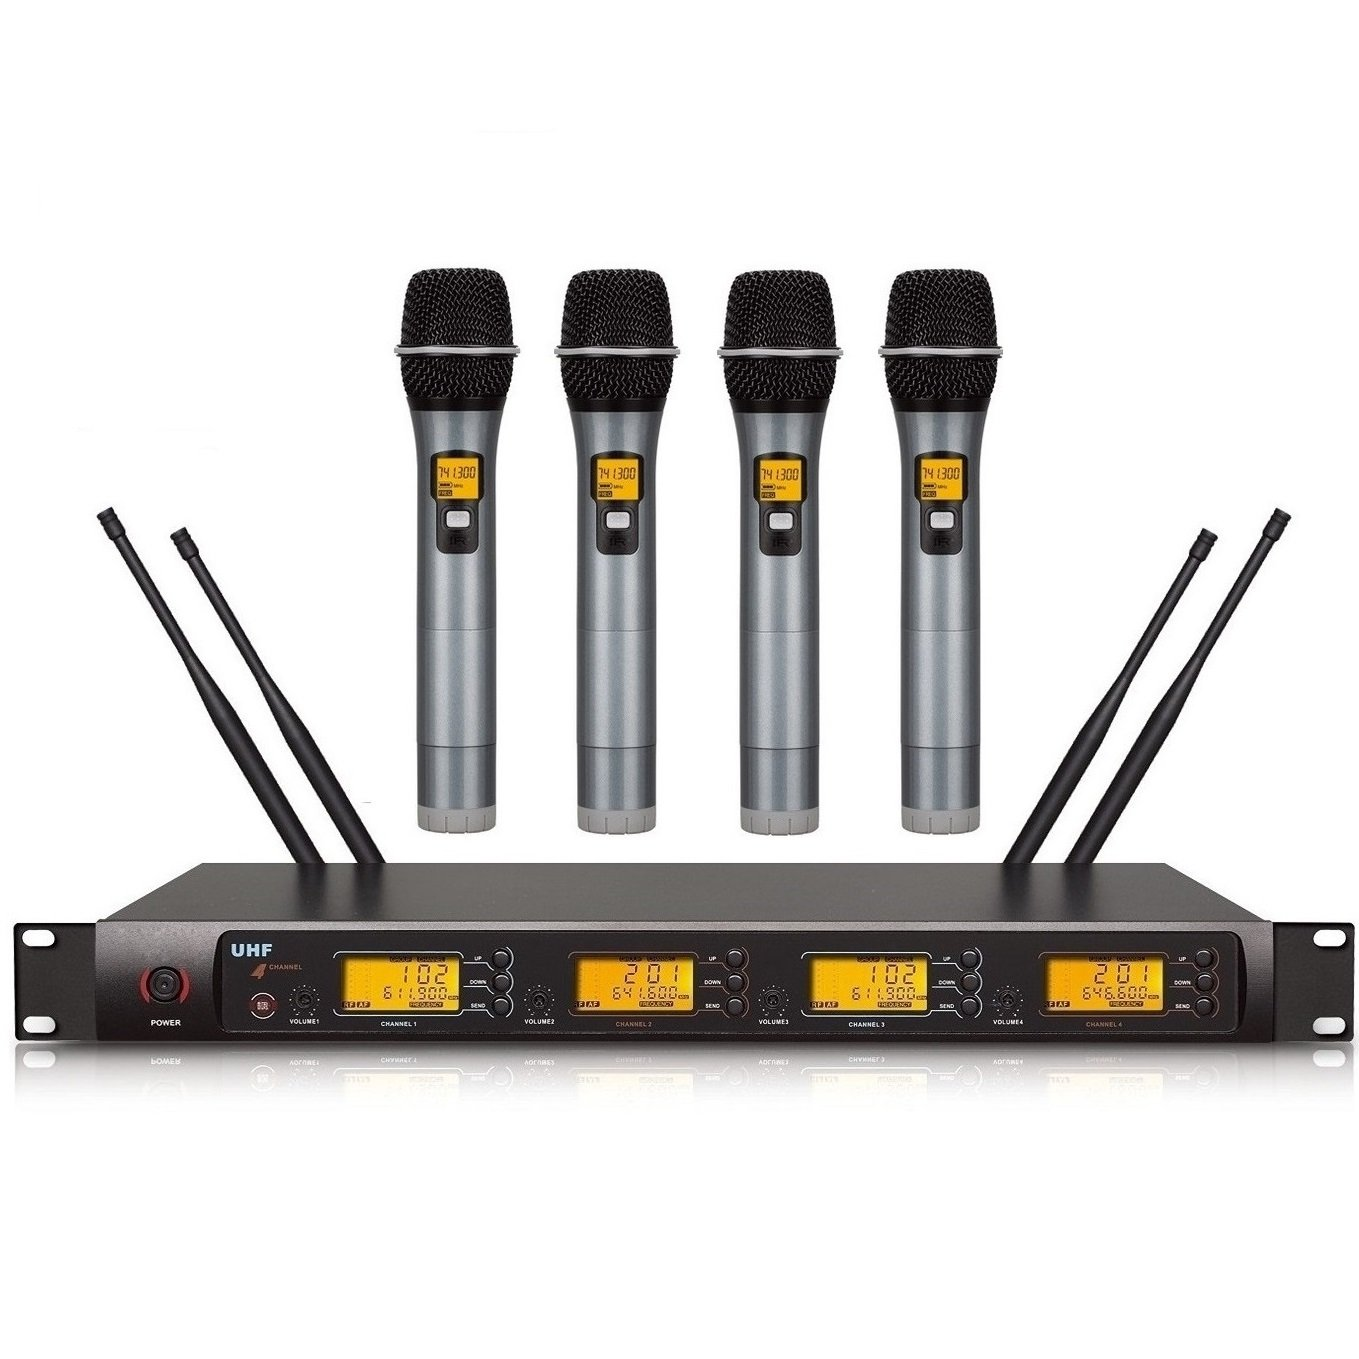 4x100 Channels UHF PLL Handheld Wireless Microphone Professional For Church,Home Karaoke, Business Meetings.Easy To Set Up